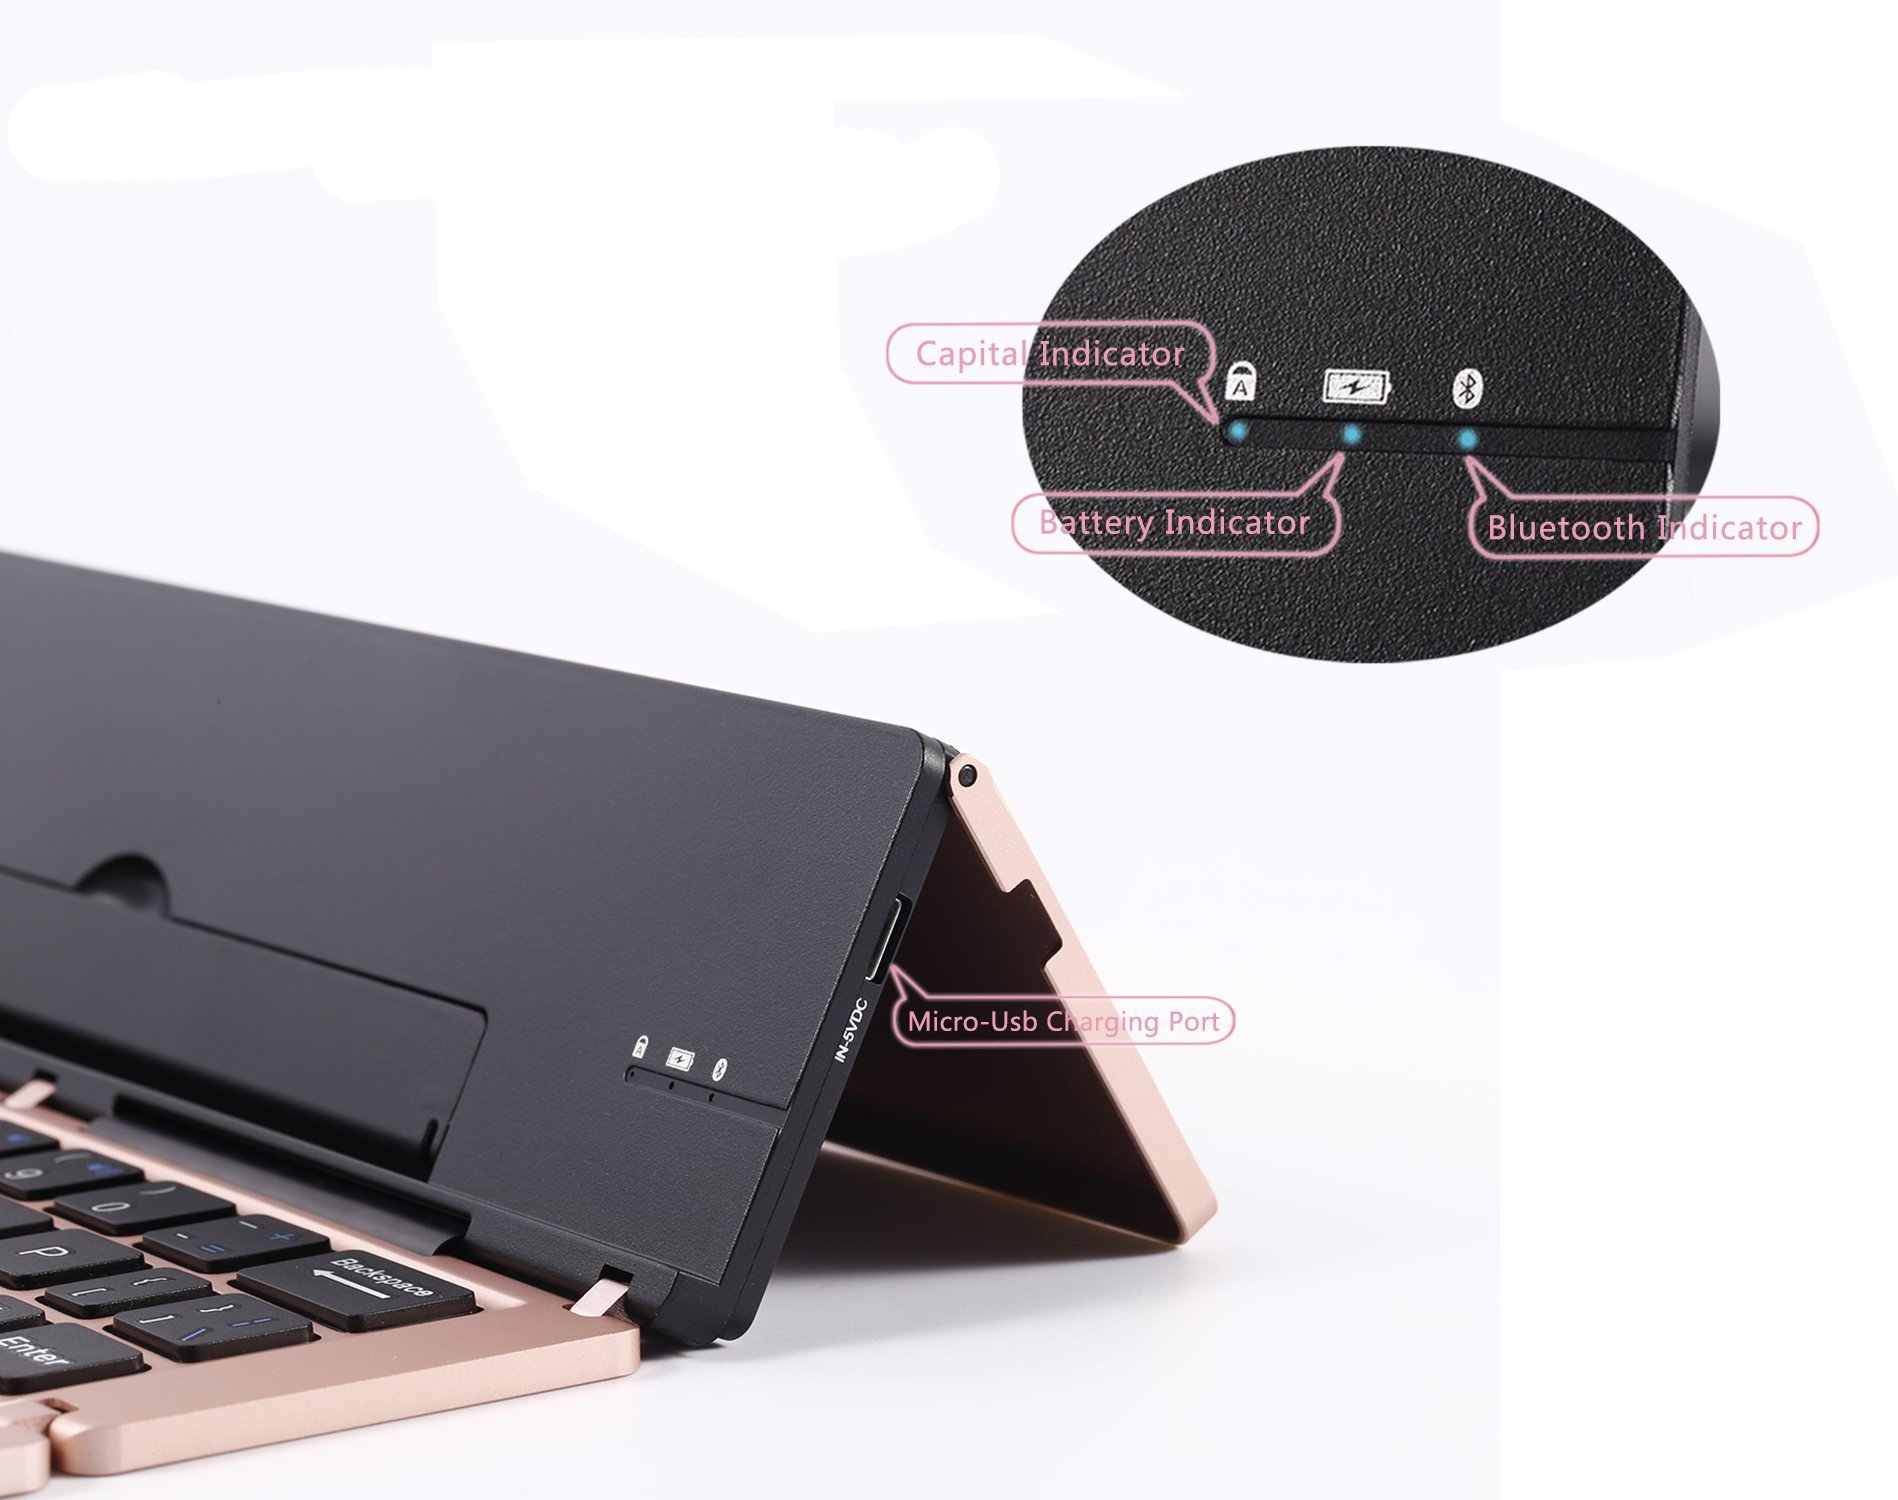 Lucky2Buy Foldable Portable Bluetooth Wireless Keyboard with Kickstand Holder For iPhone, iPad, Andriod Smartphone and Windows Tablet - Rose Gold by Lucky2Buy (Image #6)